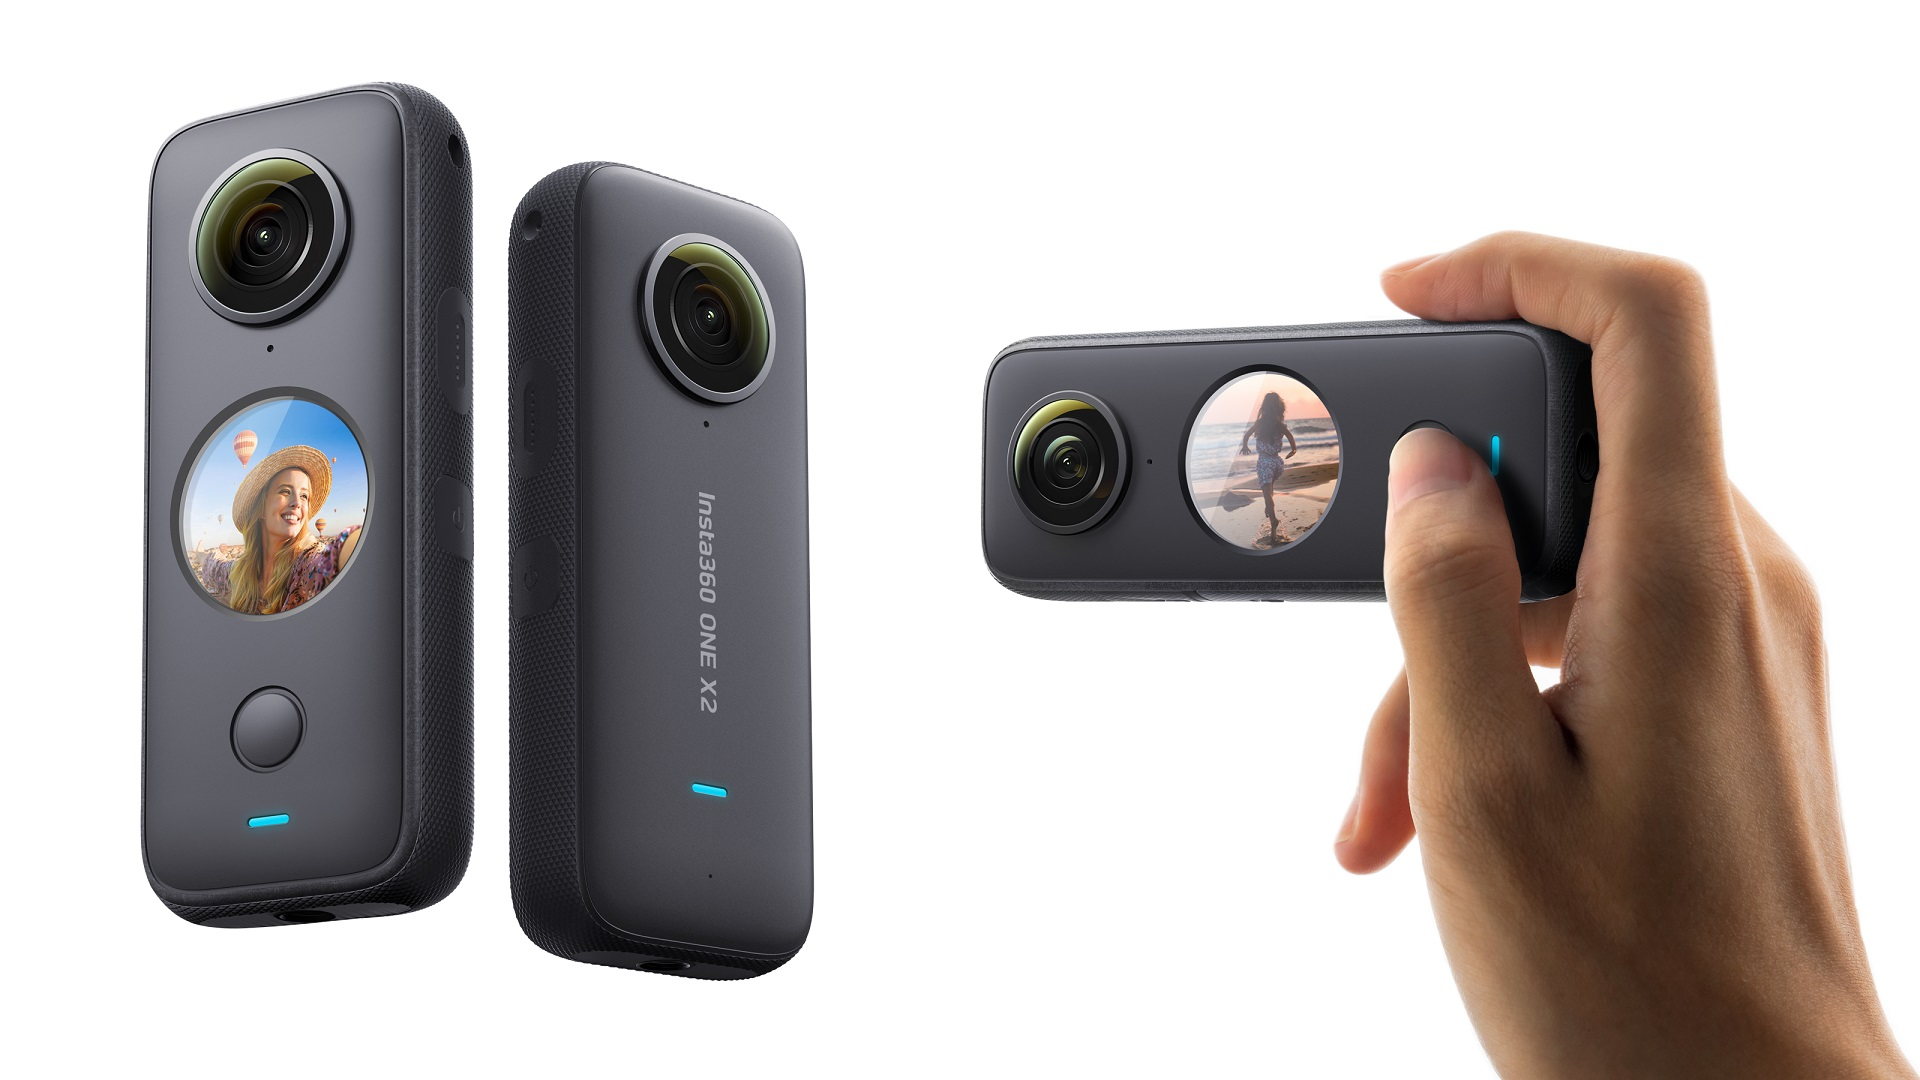 Insta360 ONE X2 Announced - Specs & First Look Review | CineD